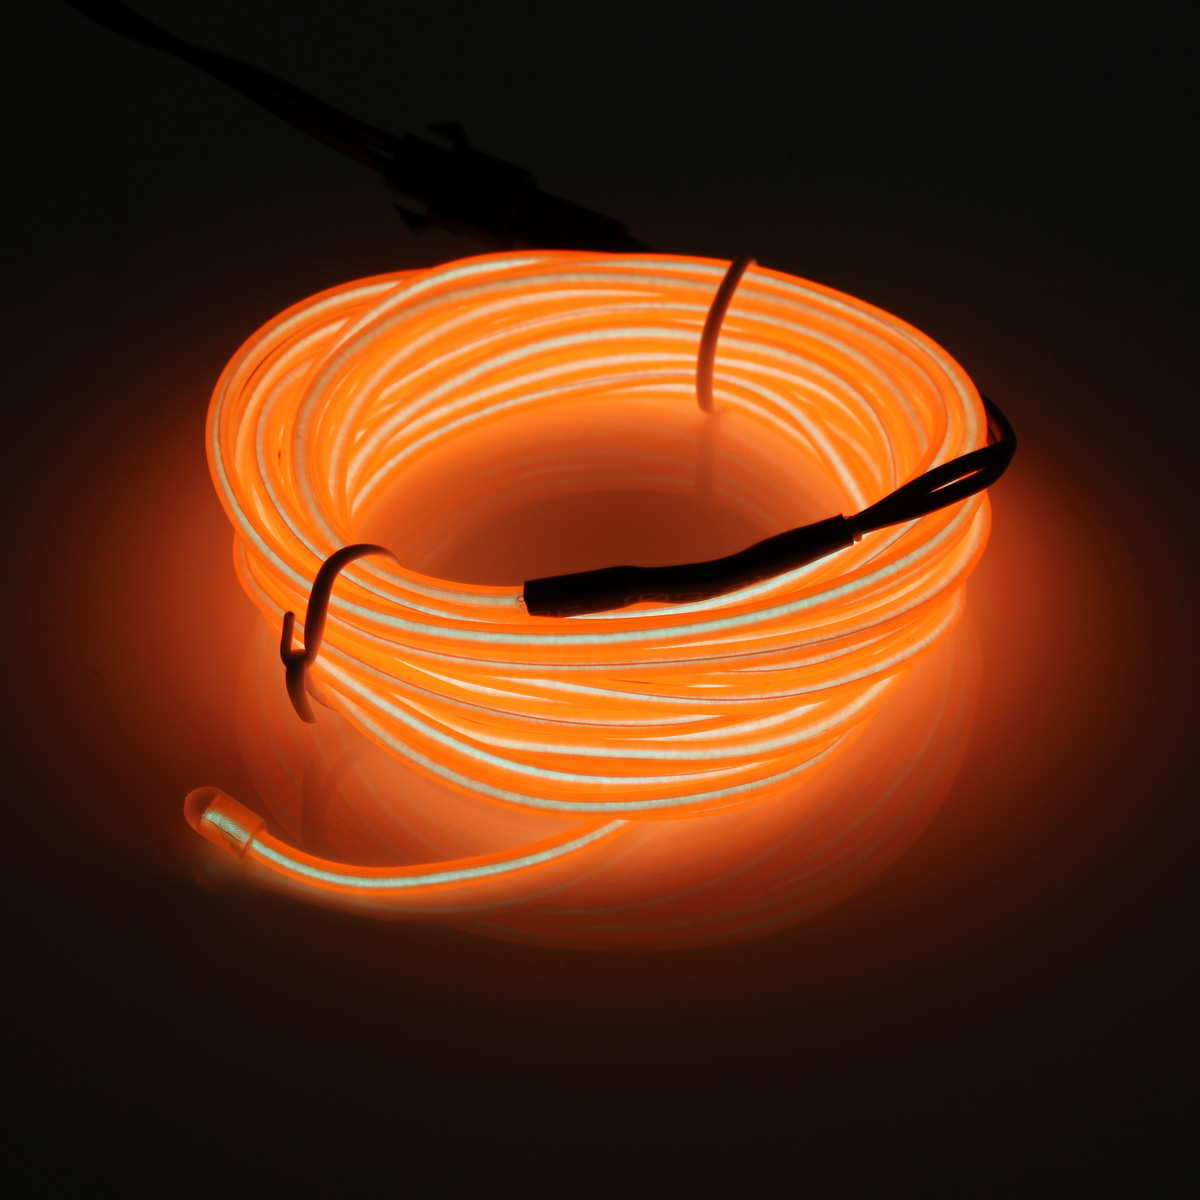 2m Flash Flexible Neon Light Glow El Strip Tube Wire Rope Kit Car Home Decoration